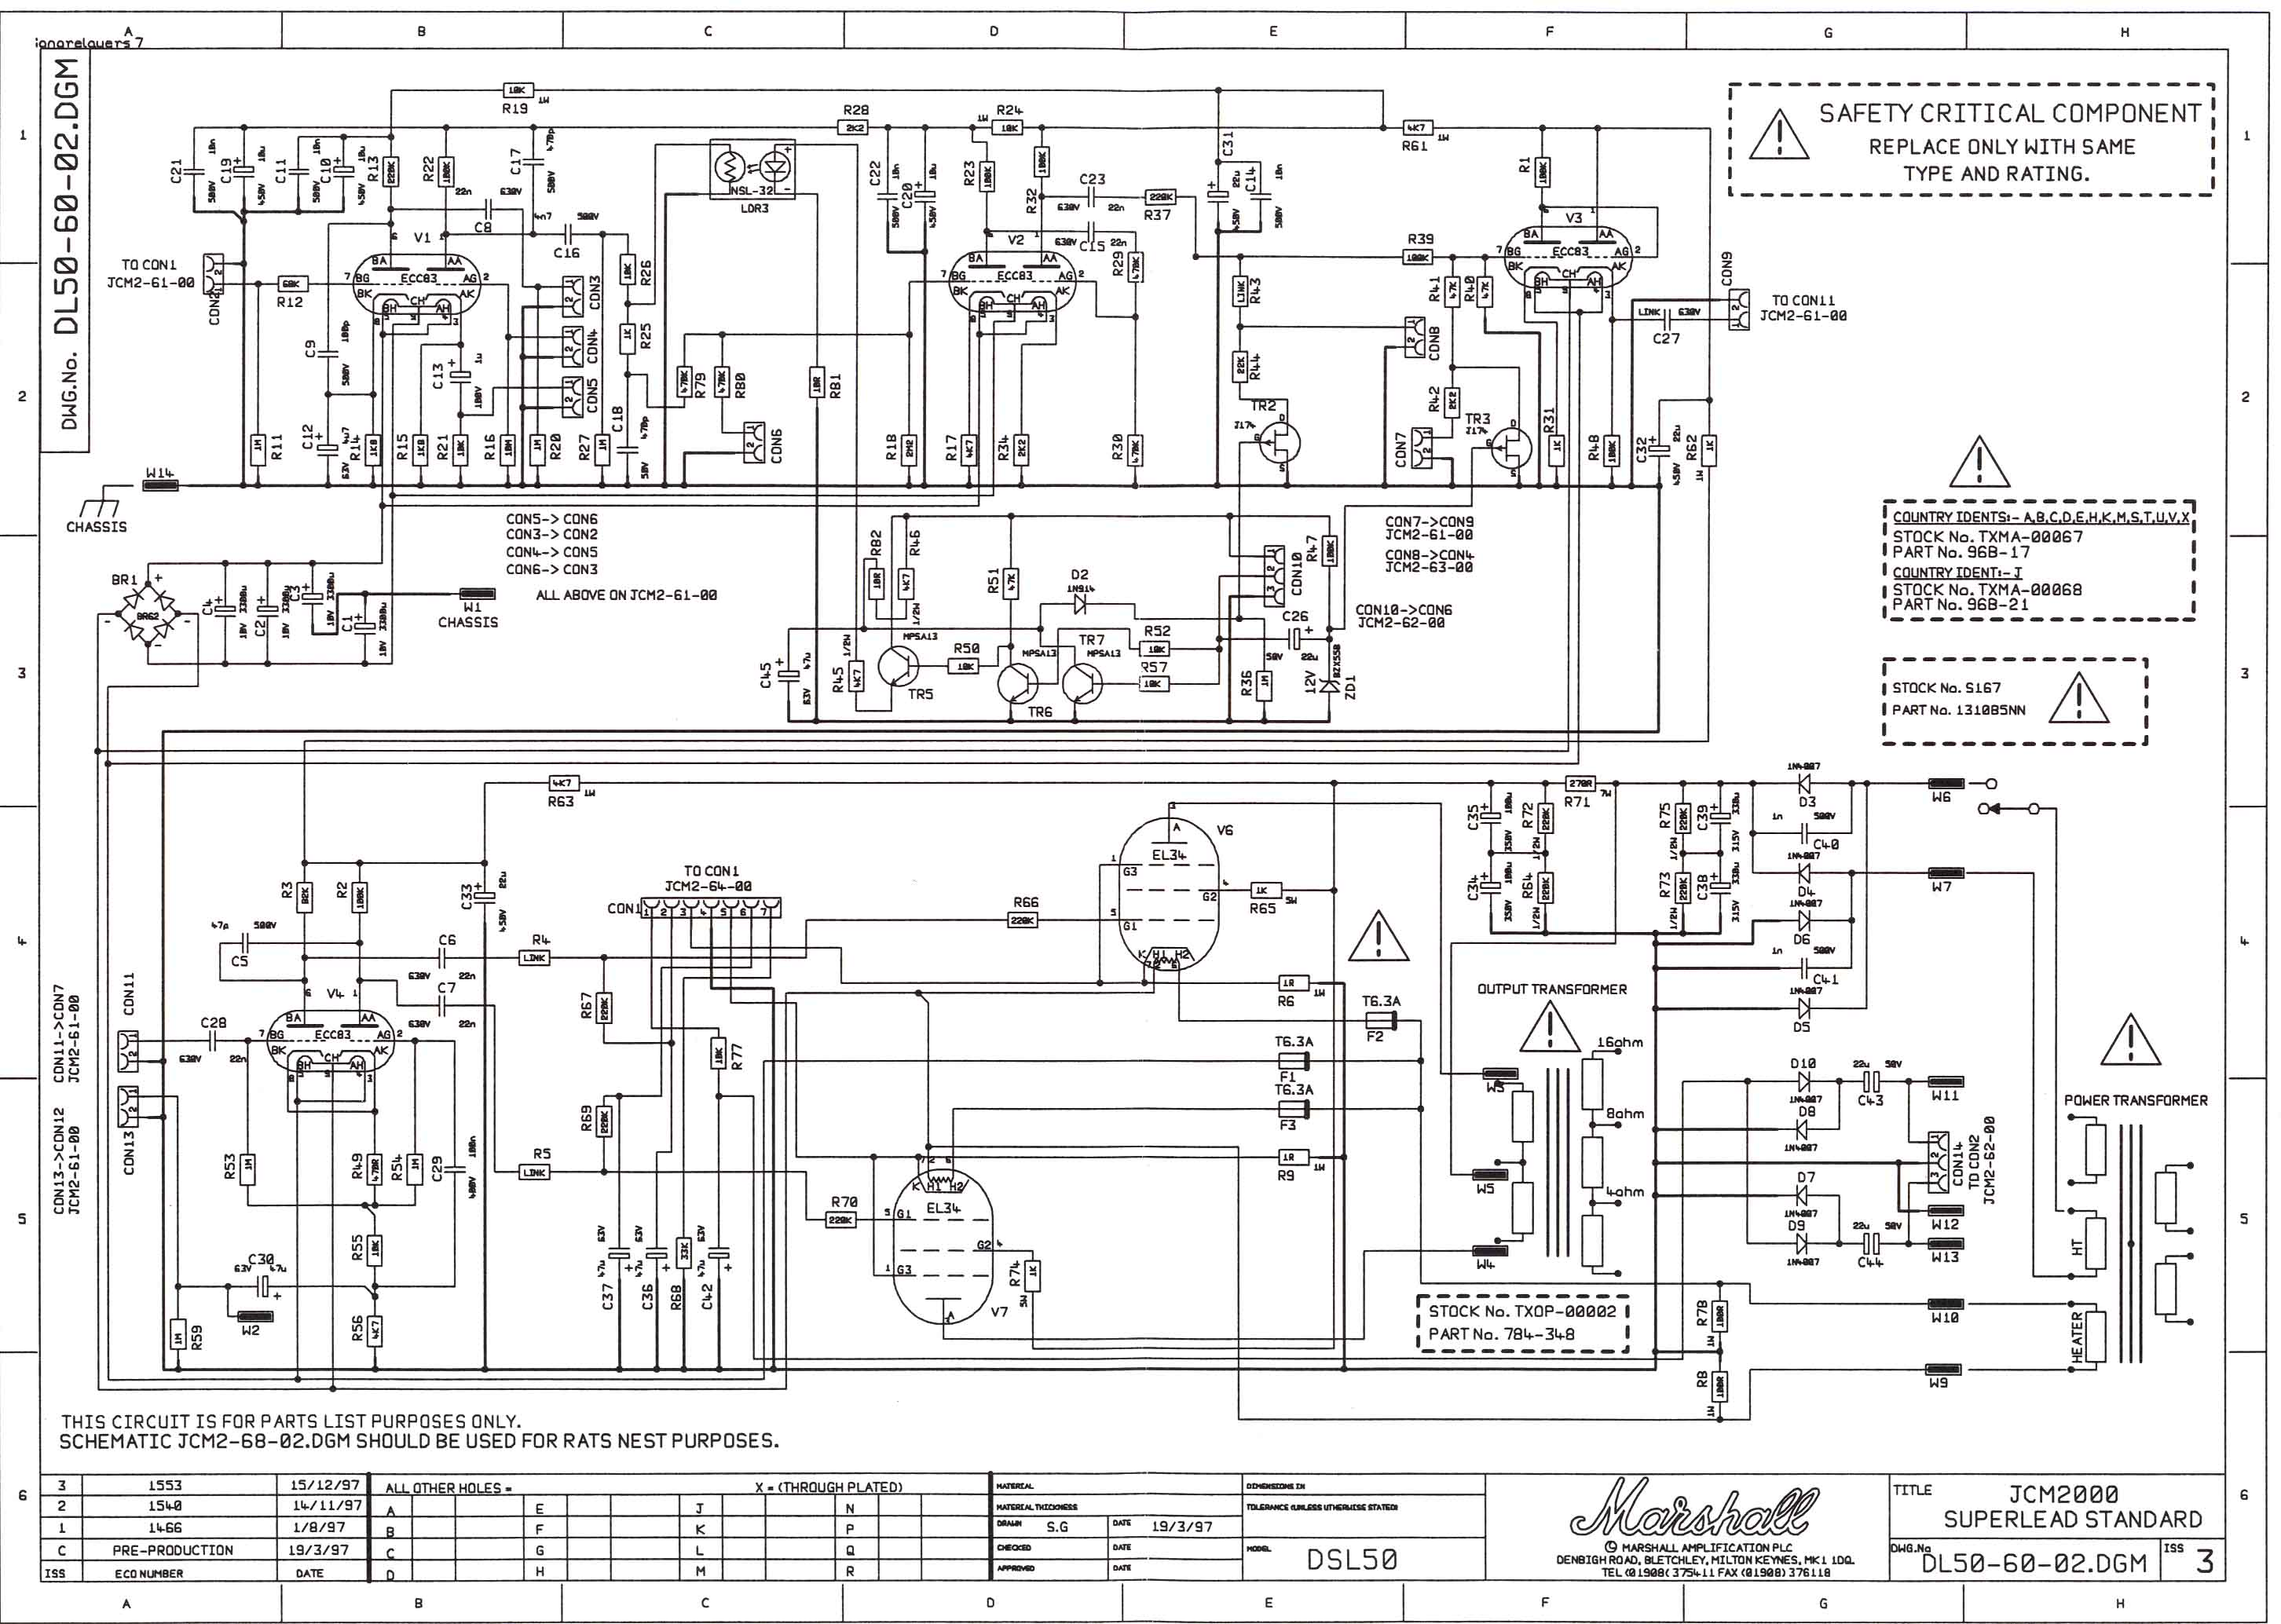 Marshall Amp Schematics 1979 Mgb Wiring Diagram Free Picture Schematic Jcm2000 Dsl50